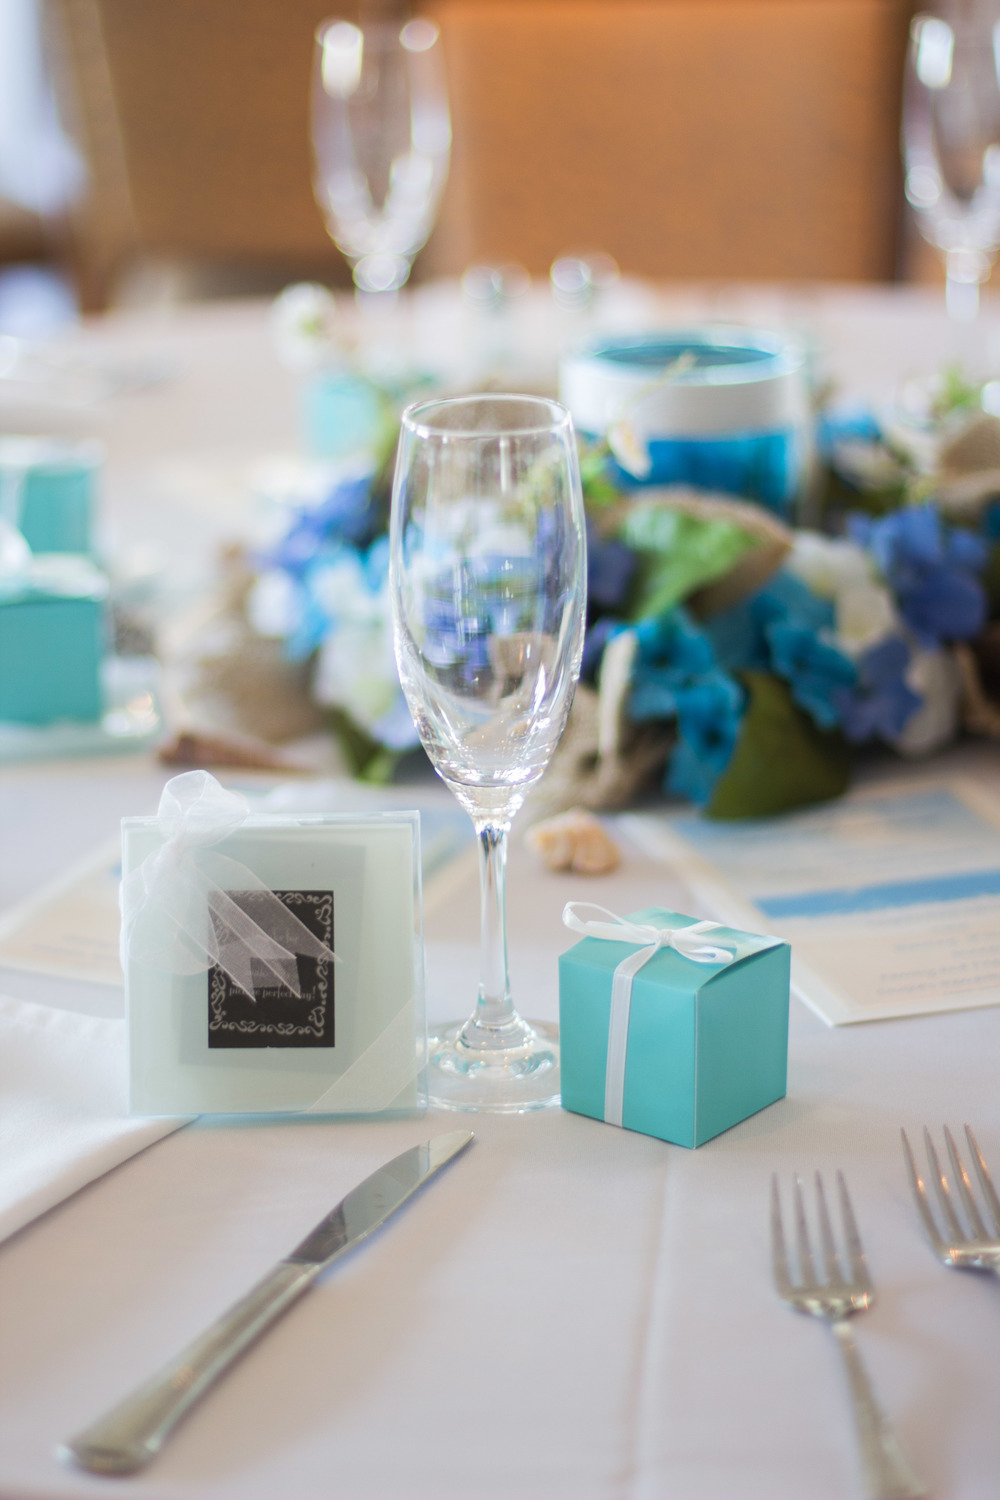 Rustic Aqua Sea Wedding Decor | Martinsborough Wedding Reception - Greenville NC | Bryant Tyson Photography